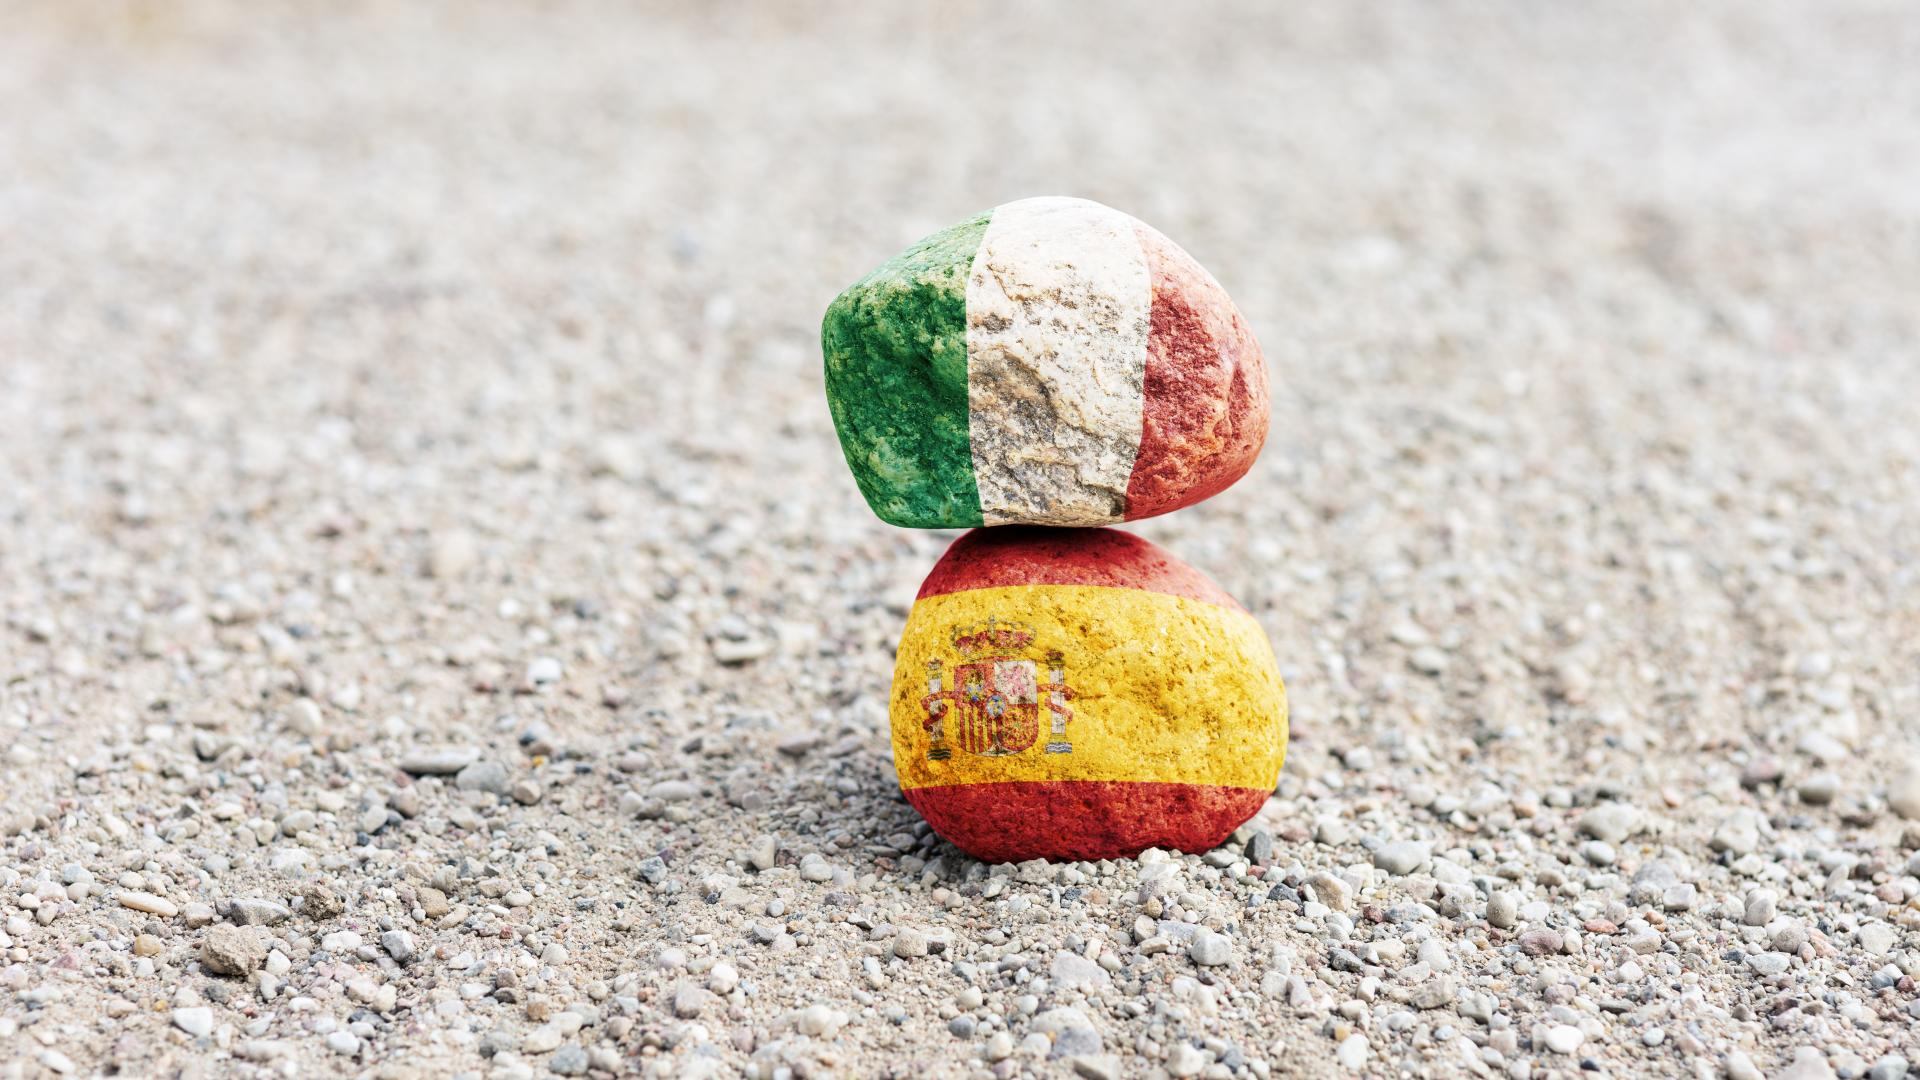 Italy and Spain's flags painted on rocks